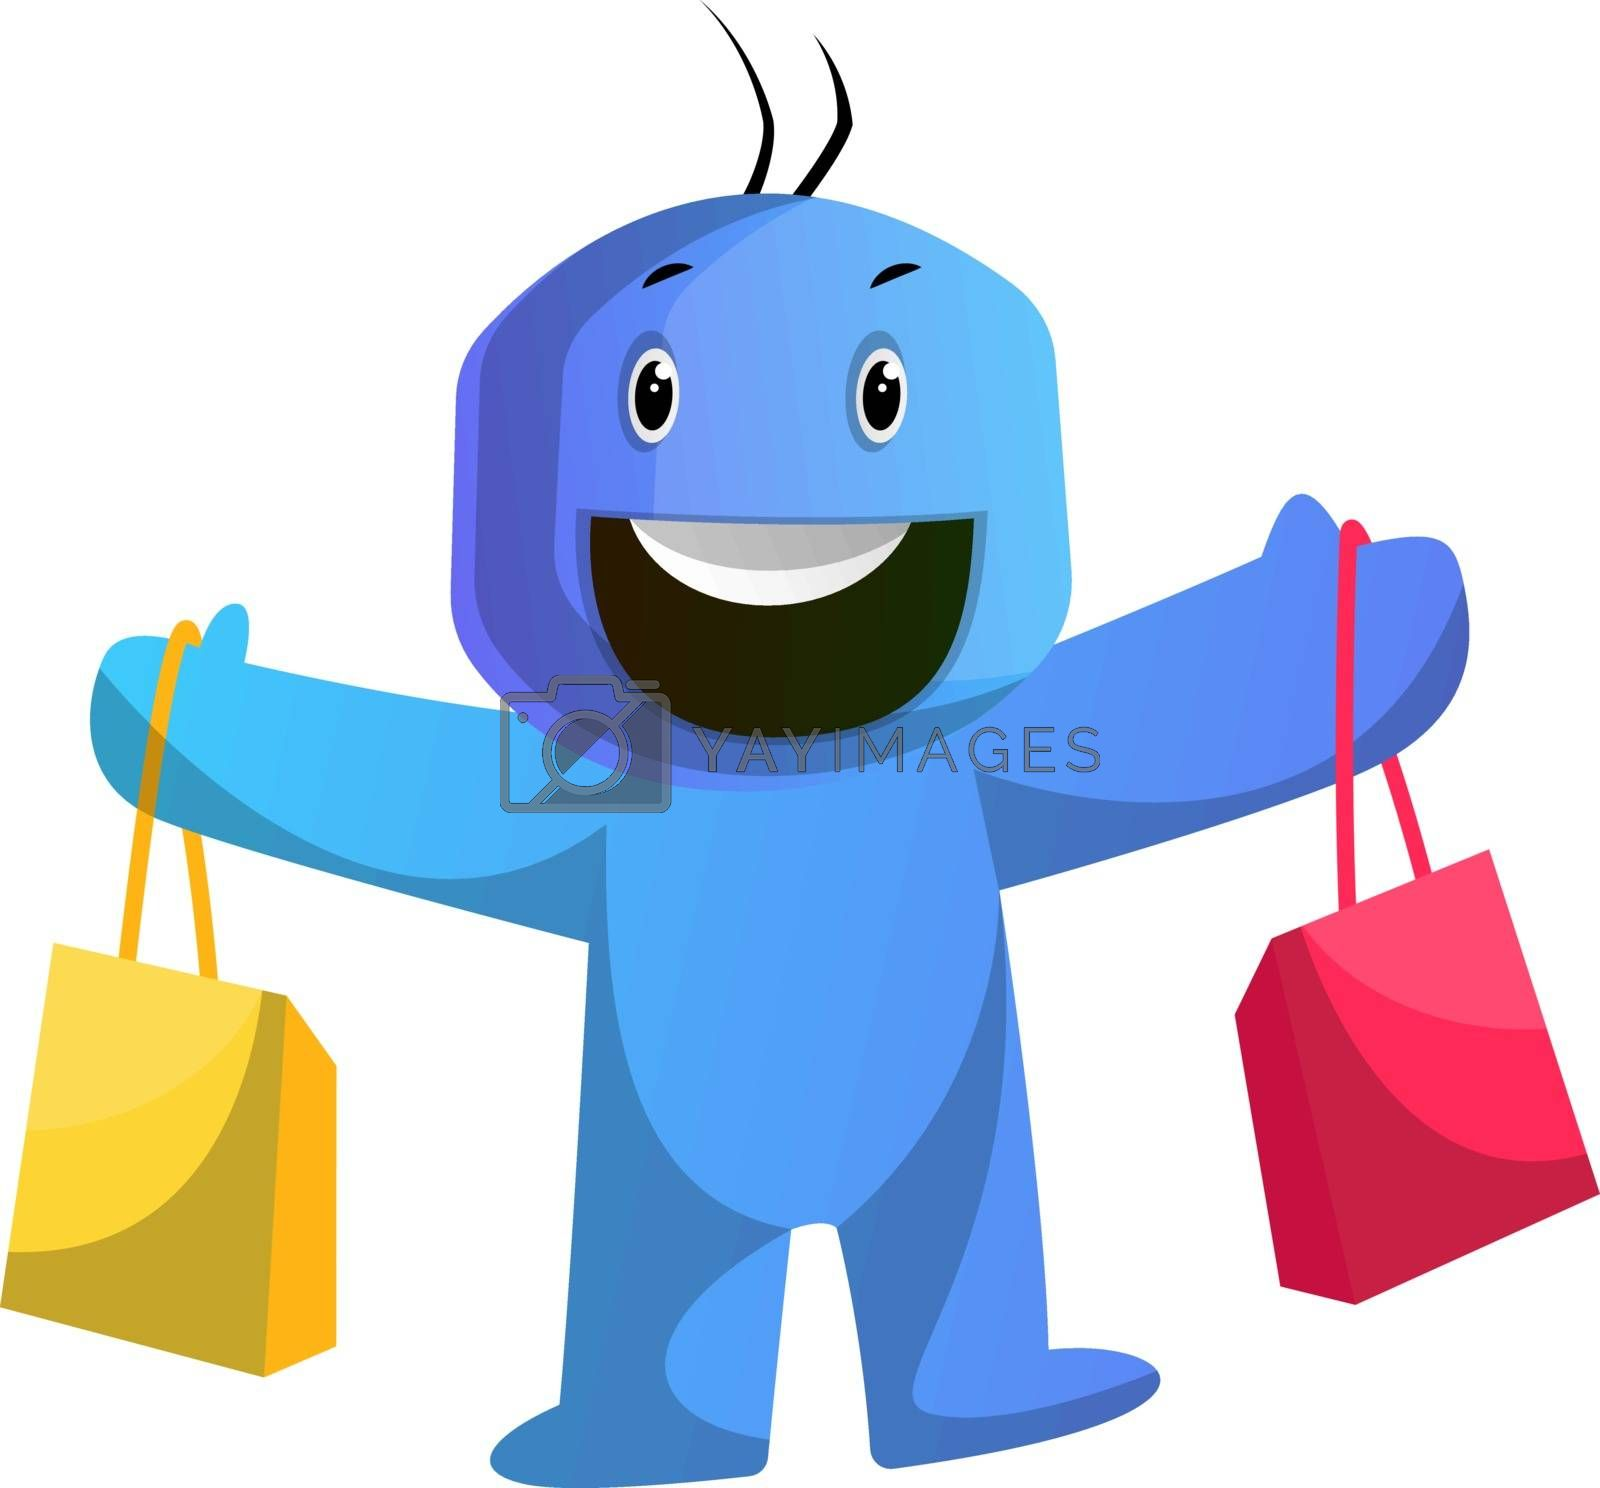 Royalty free image of Blue cartoon caracter holding shoping bags illustration vector o by Morphart